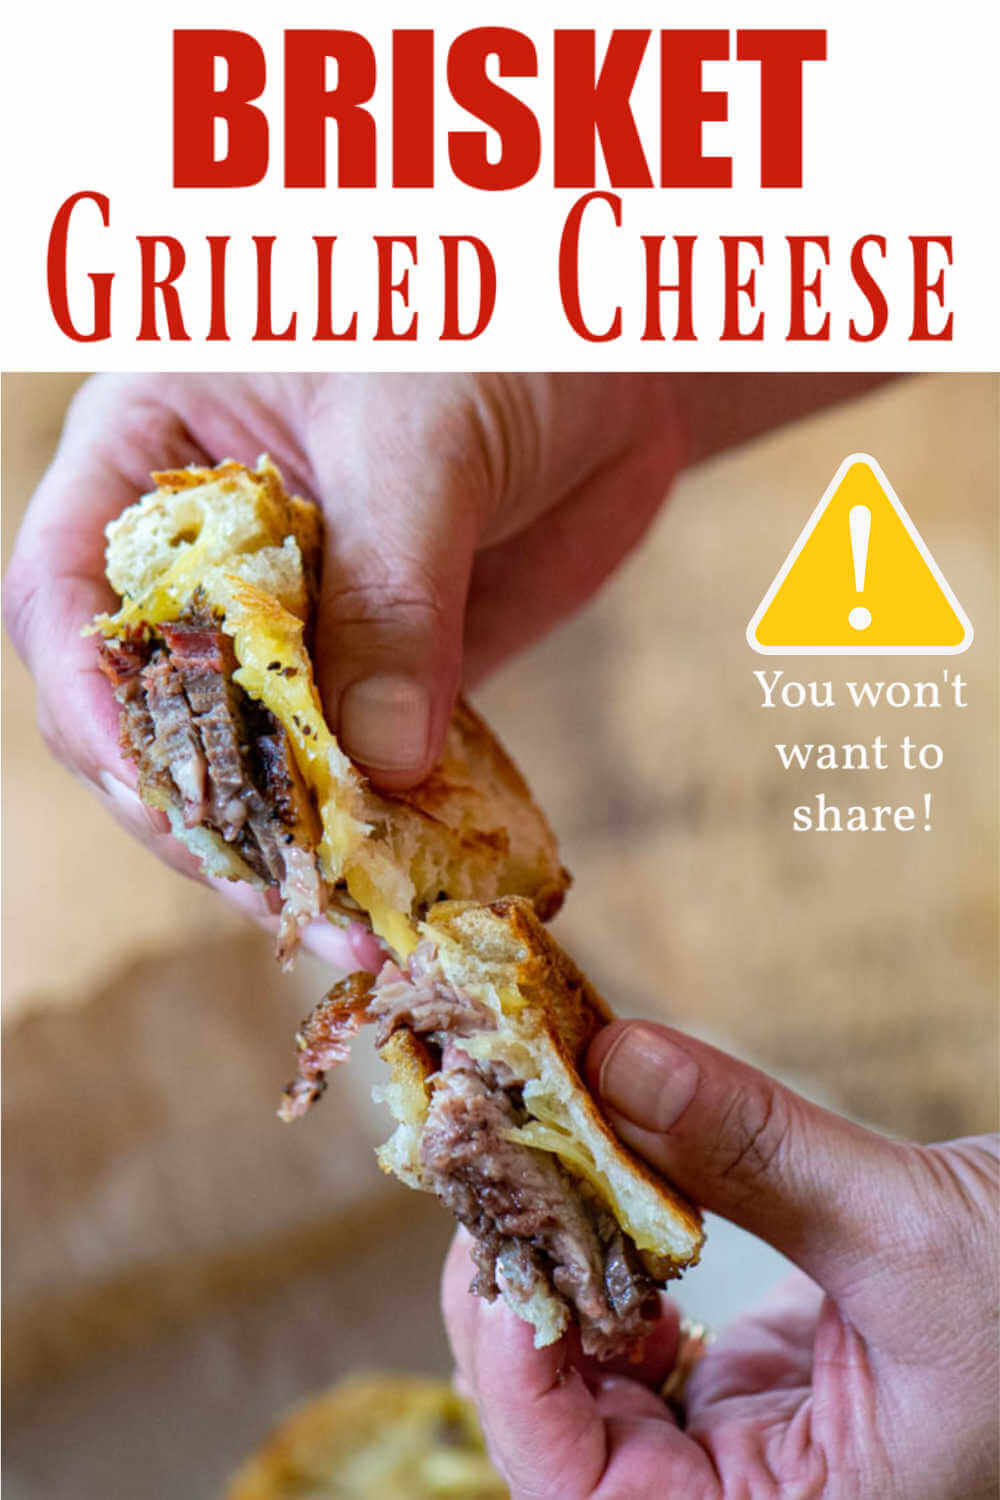 Brisket Grilled Cheese - Grown Up Twist on a Classic